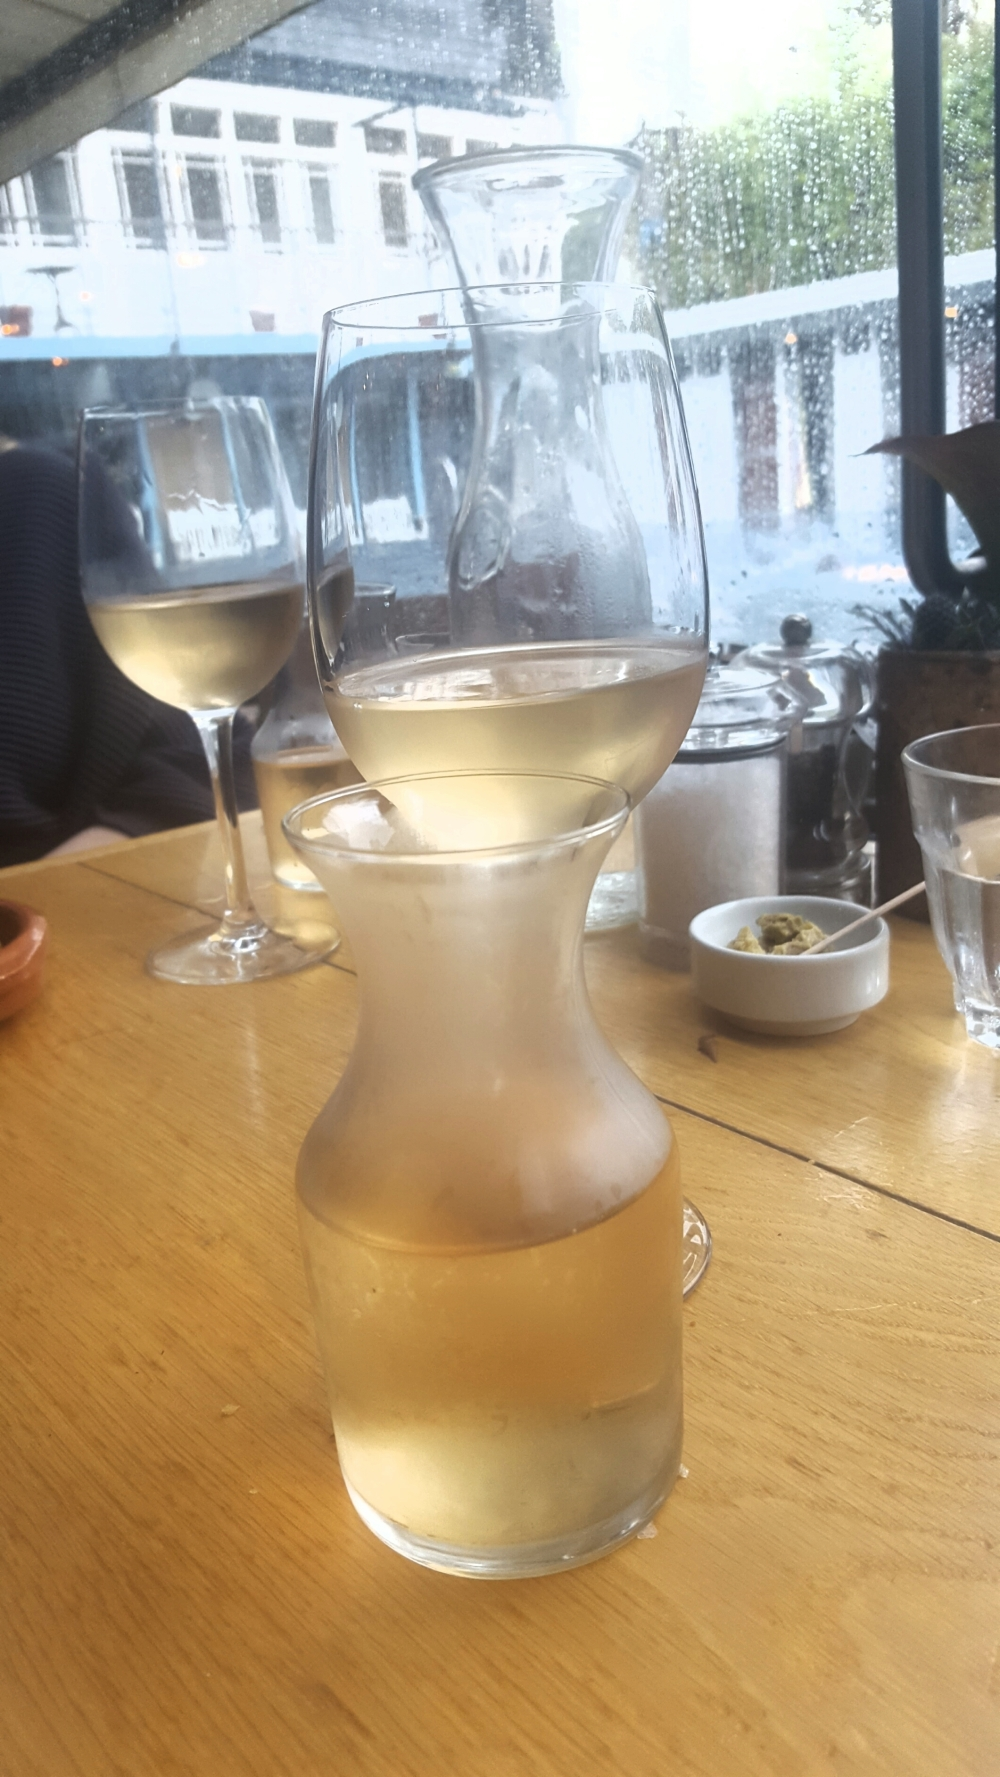 Carafe of white wine